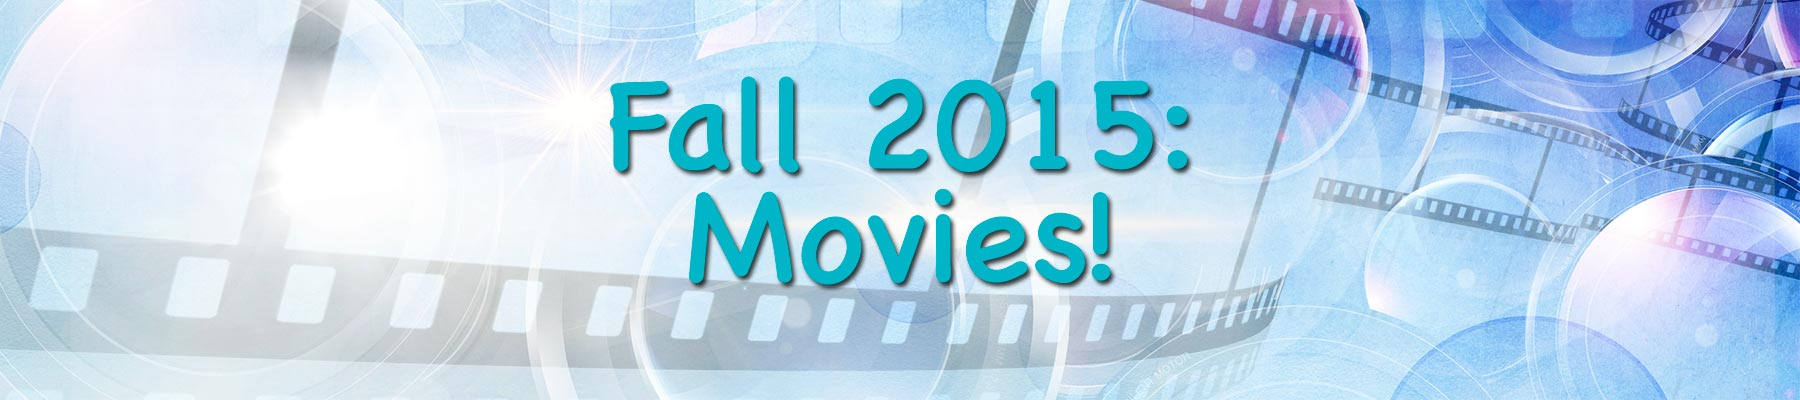 Fall 2015: Movie Screening!